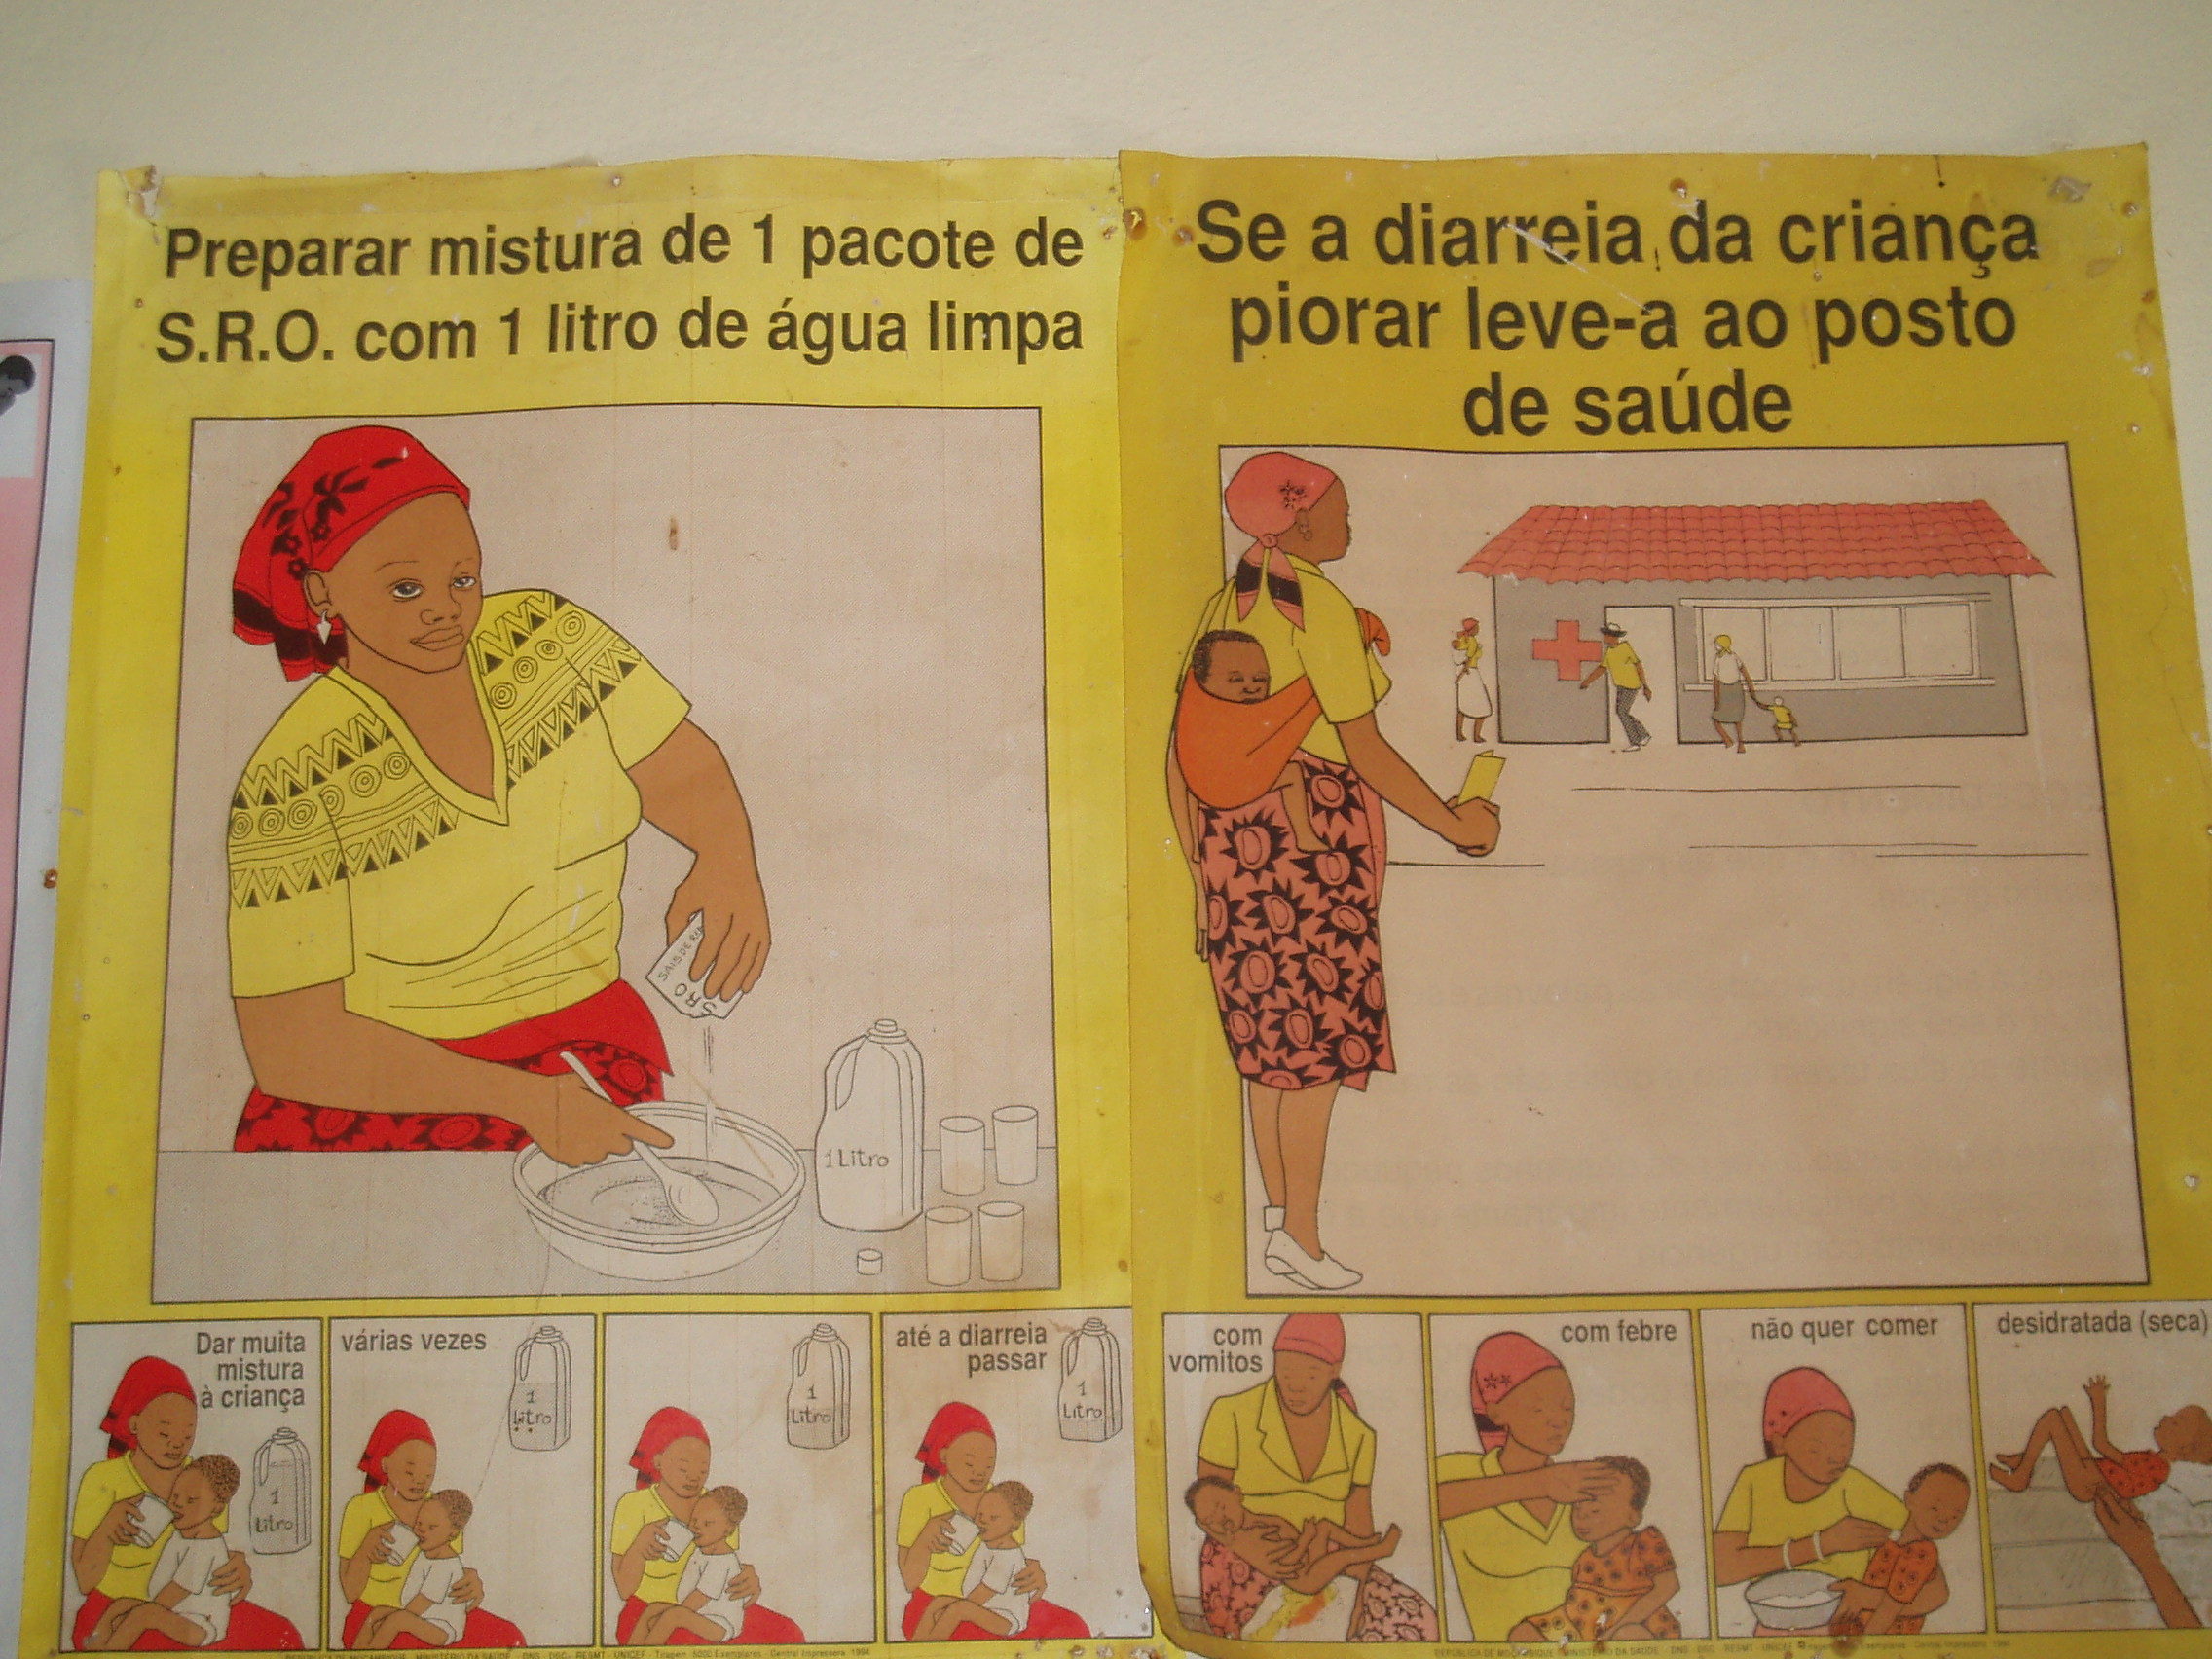 Poster in Bissau hospital showing what to do when a child has diarrhoea